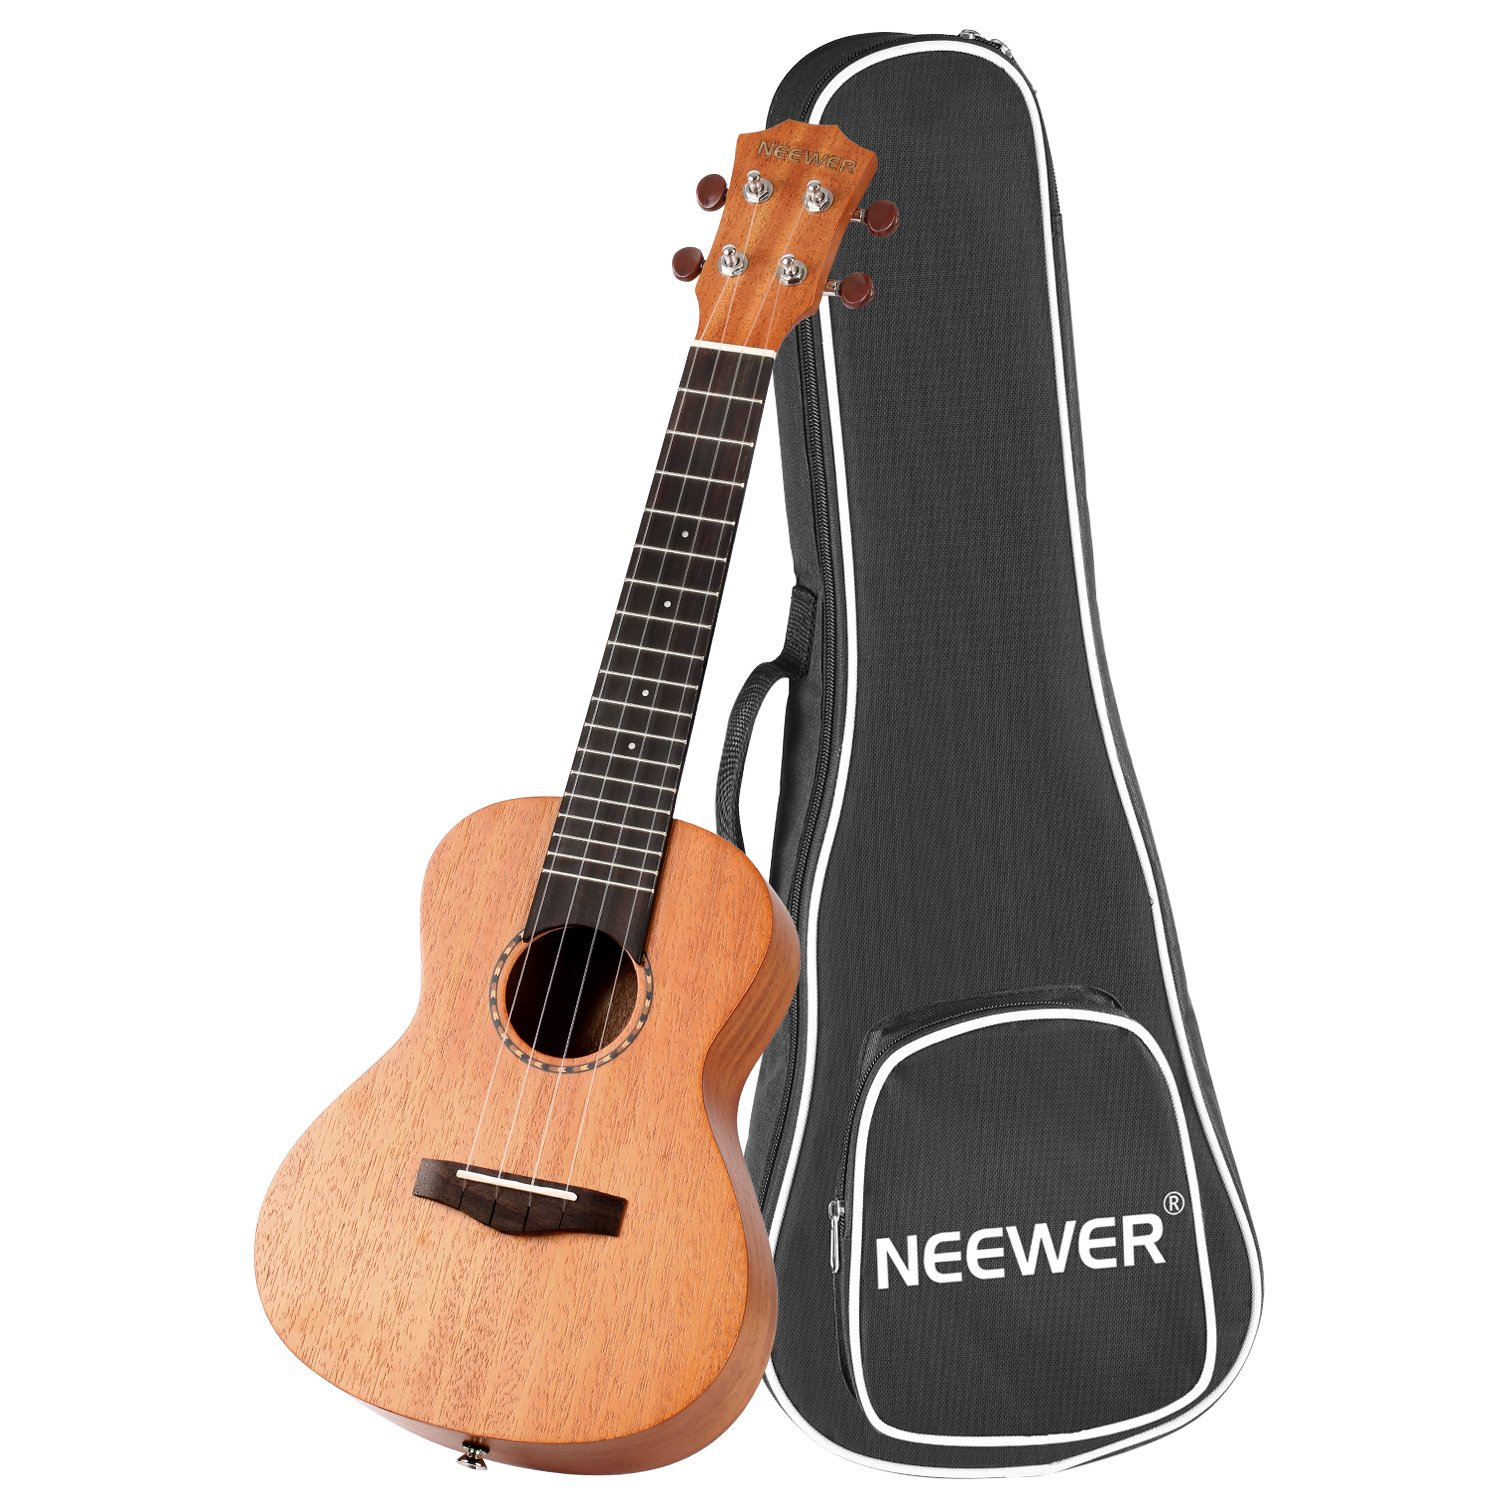 Neewer 23 inches Rosewood Ukulele Bundle with Gig Bag, 4 Silver Carbon Strings, Metal Tuning Peg, Ideal for Beginner Music Lover